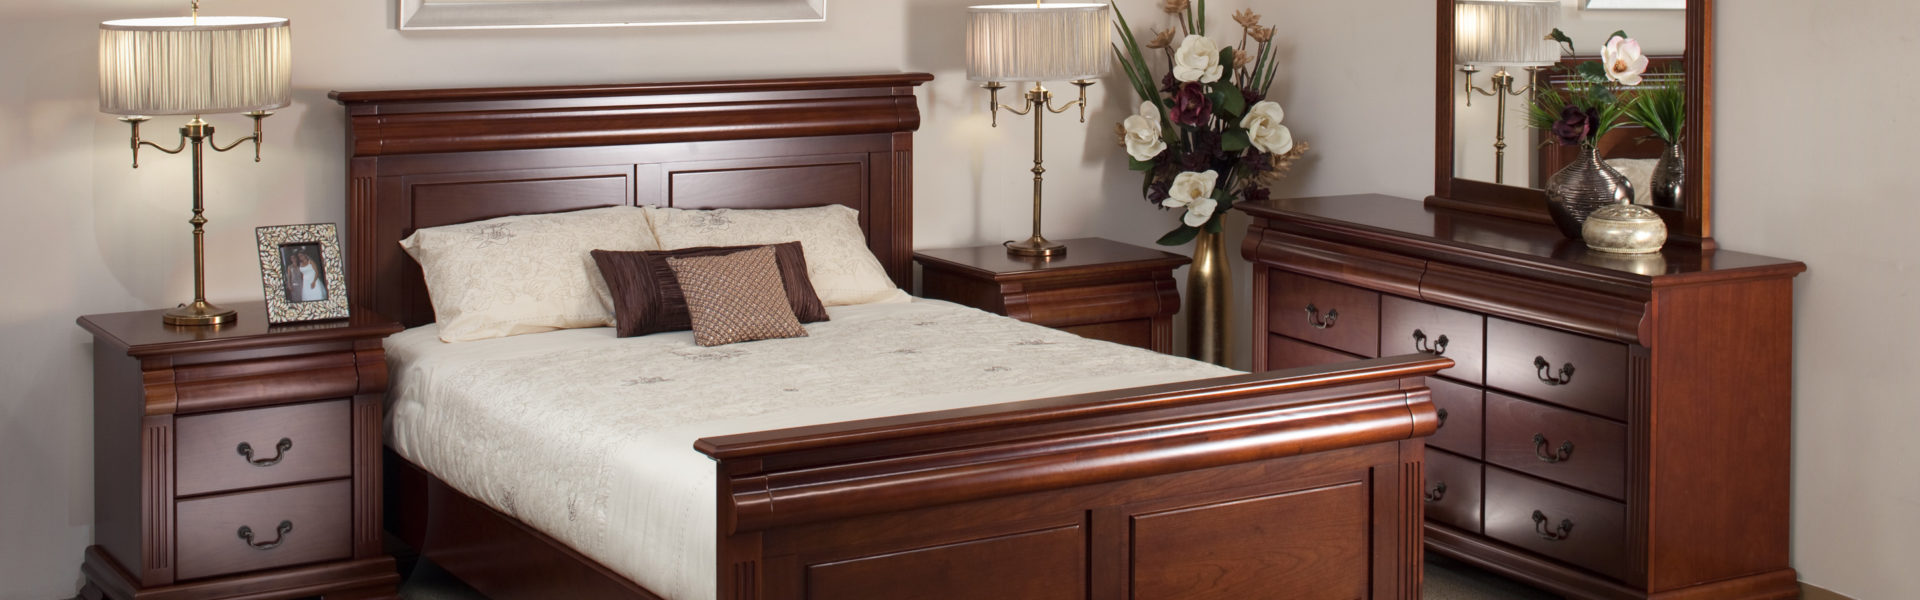 Buy The Best Comfort Bed For Your Room